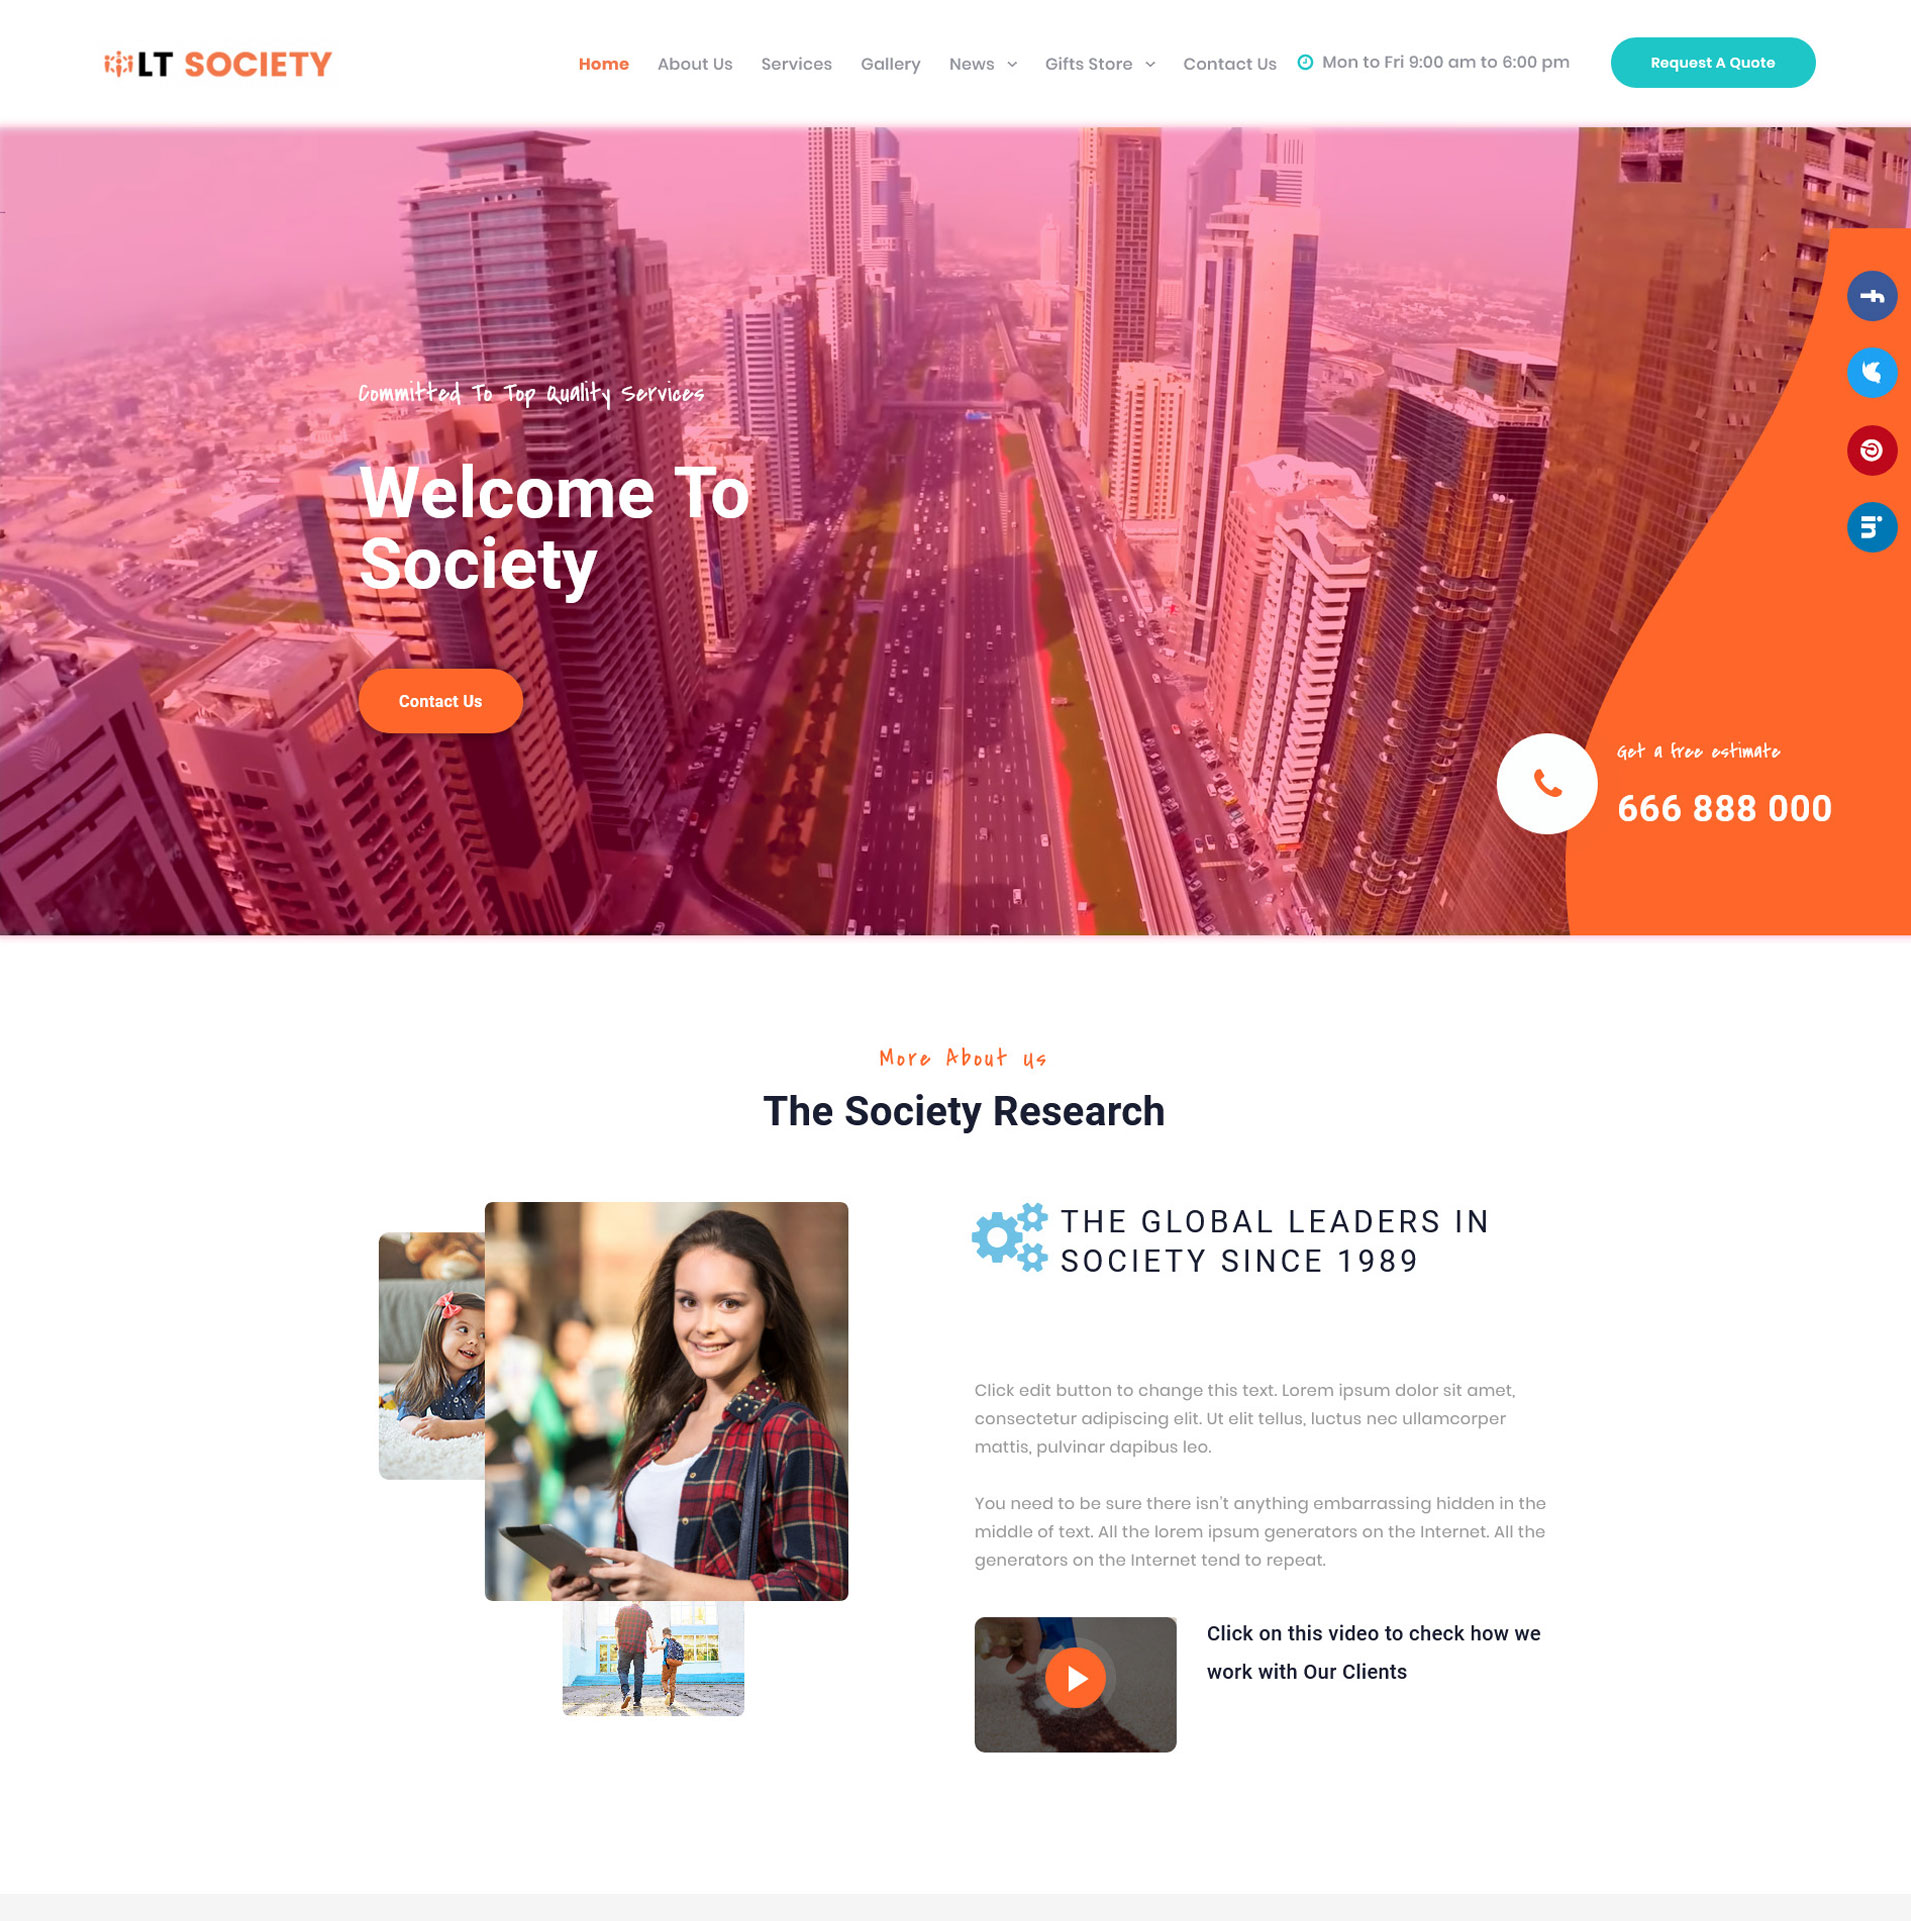 lt-society-free-responsive-wordpress-theme-screen